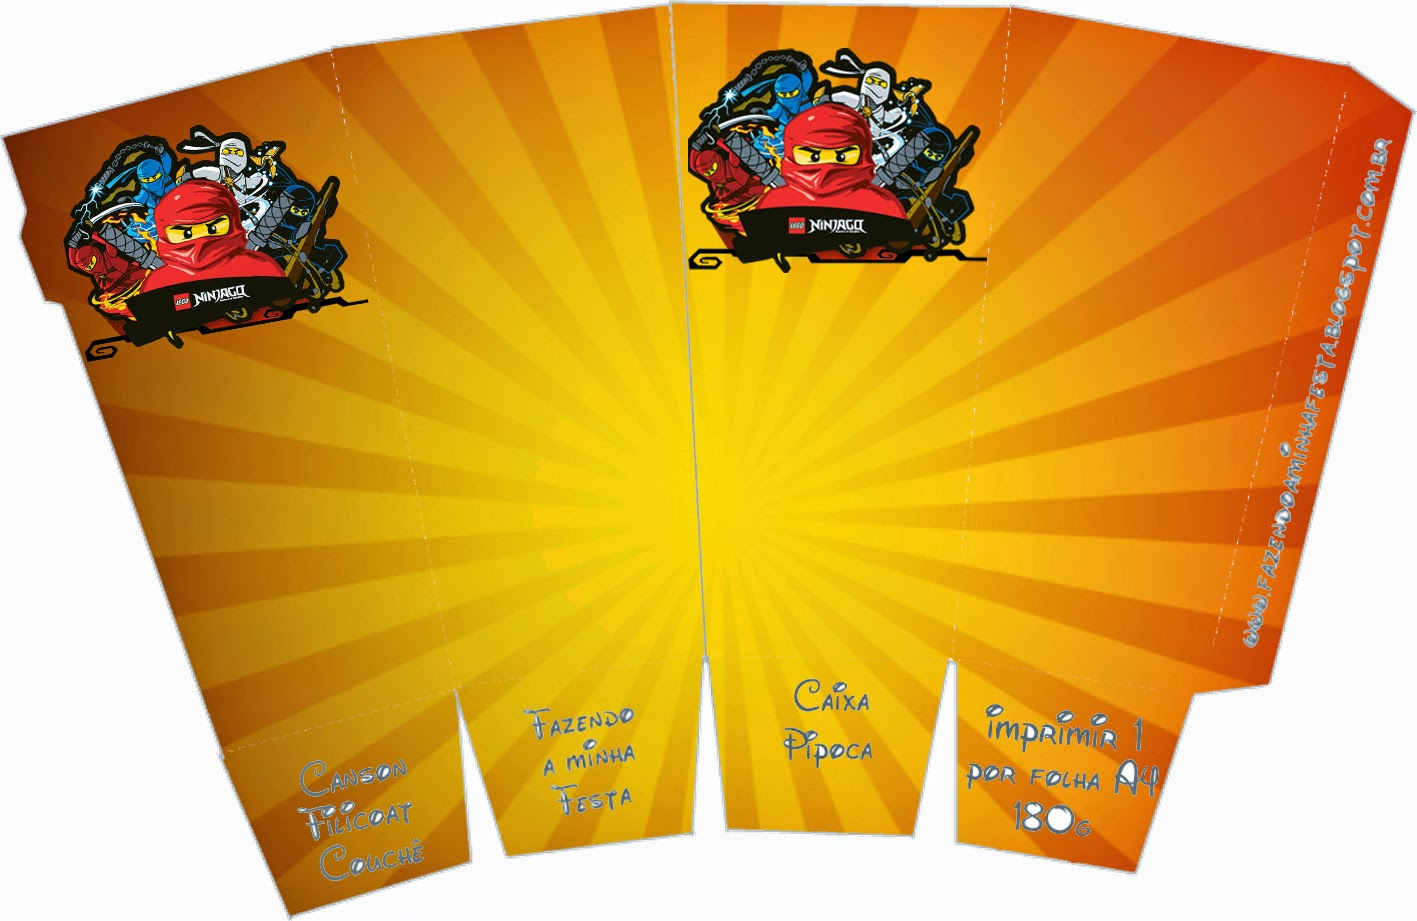 Ninjago Free Printable Boxes Oh My Fiesta! For Geeks